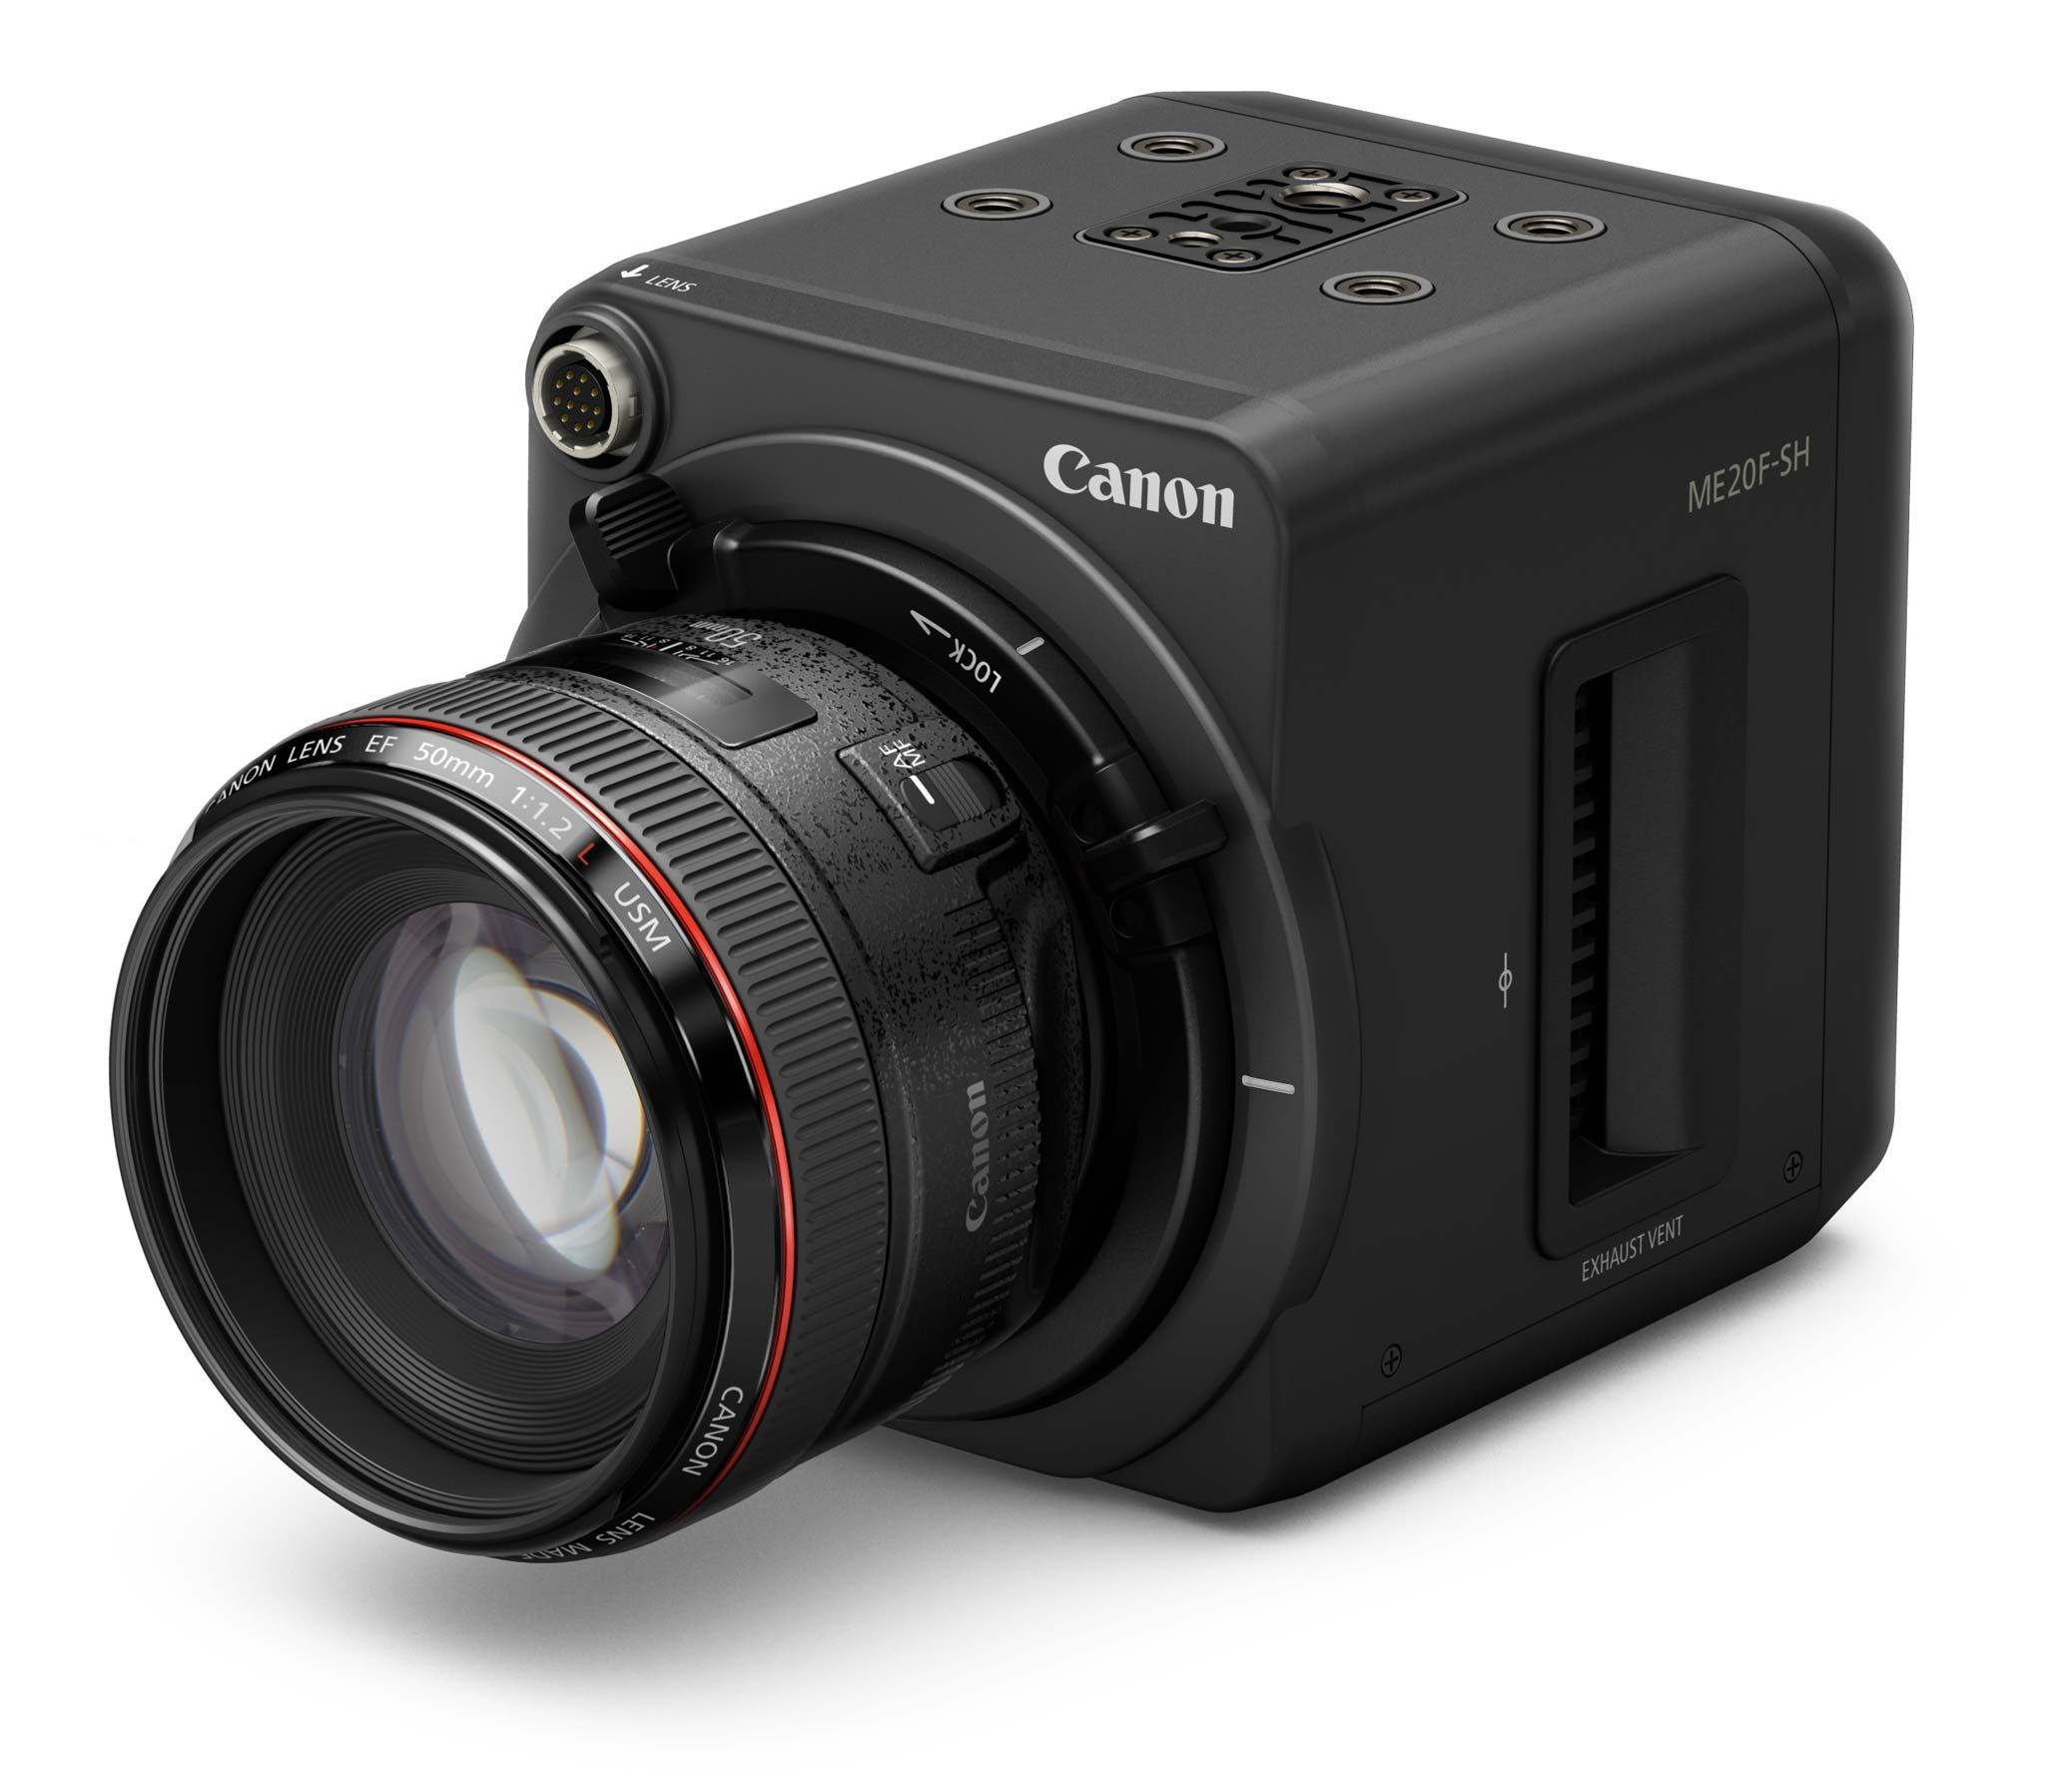 canonme20f shlens image